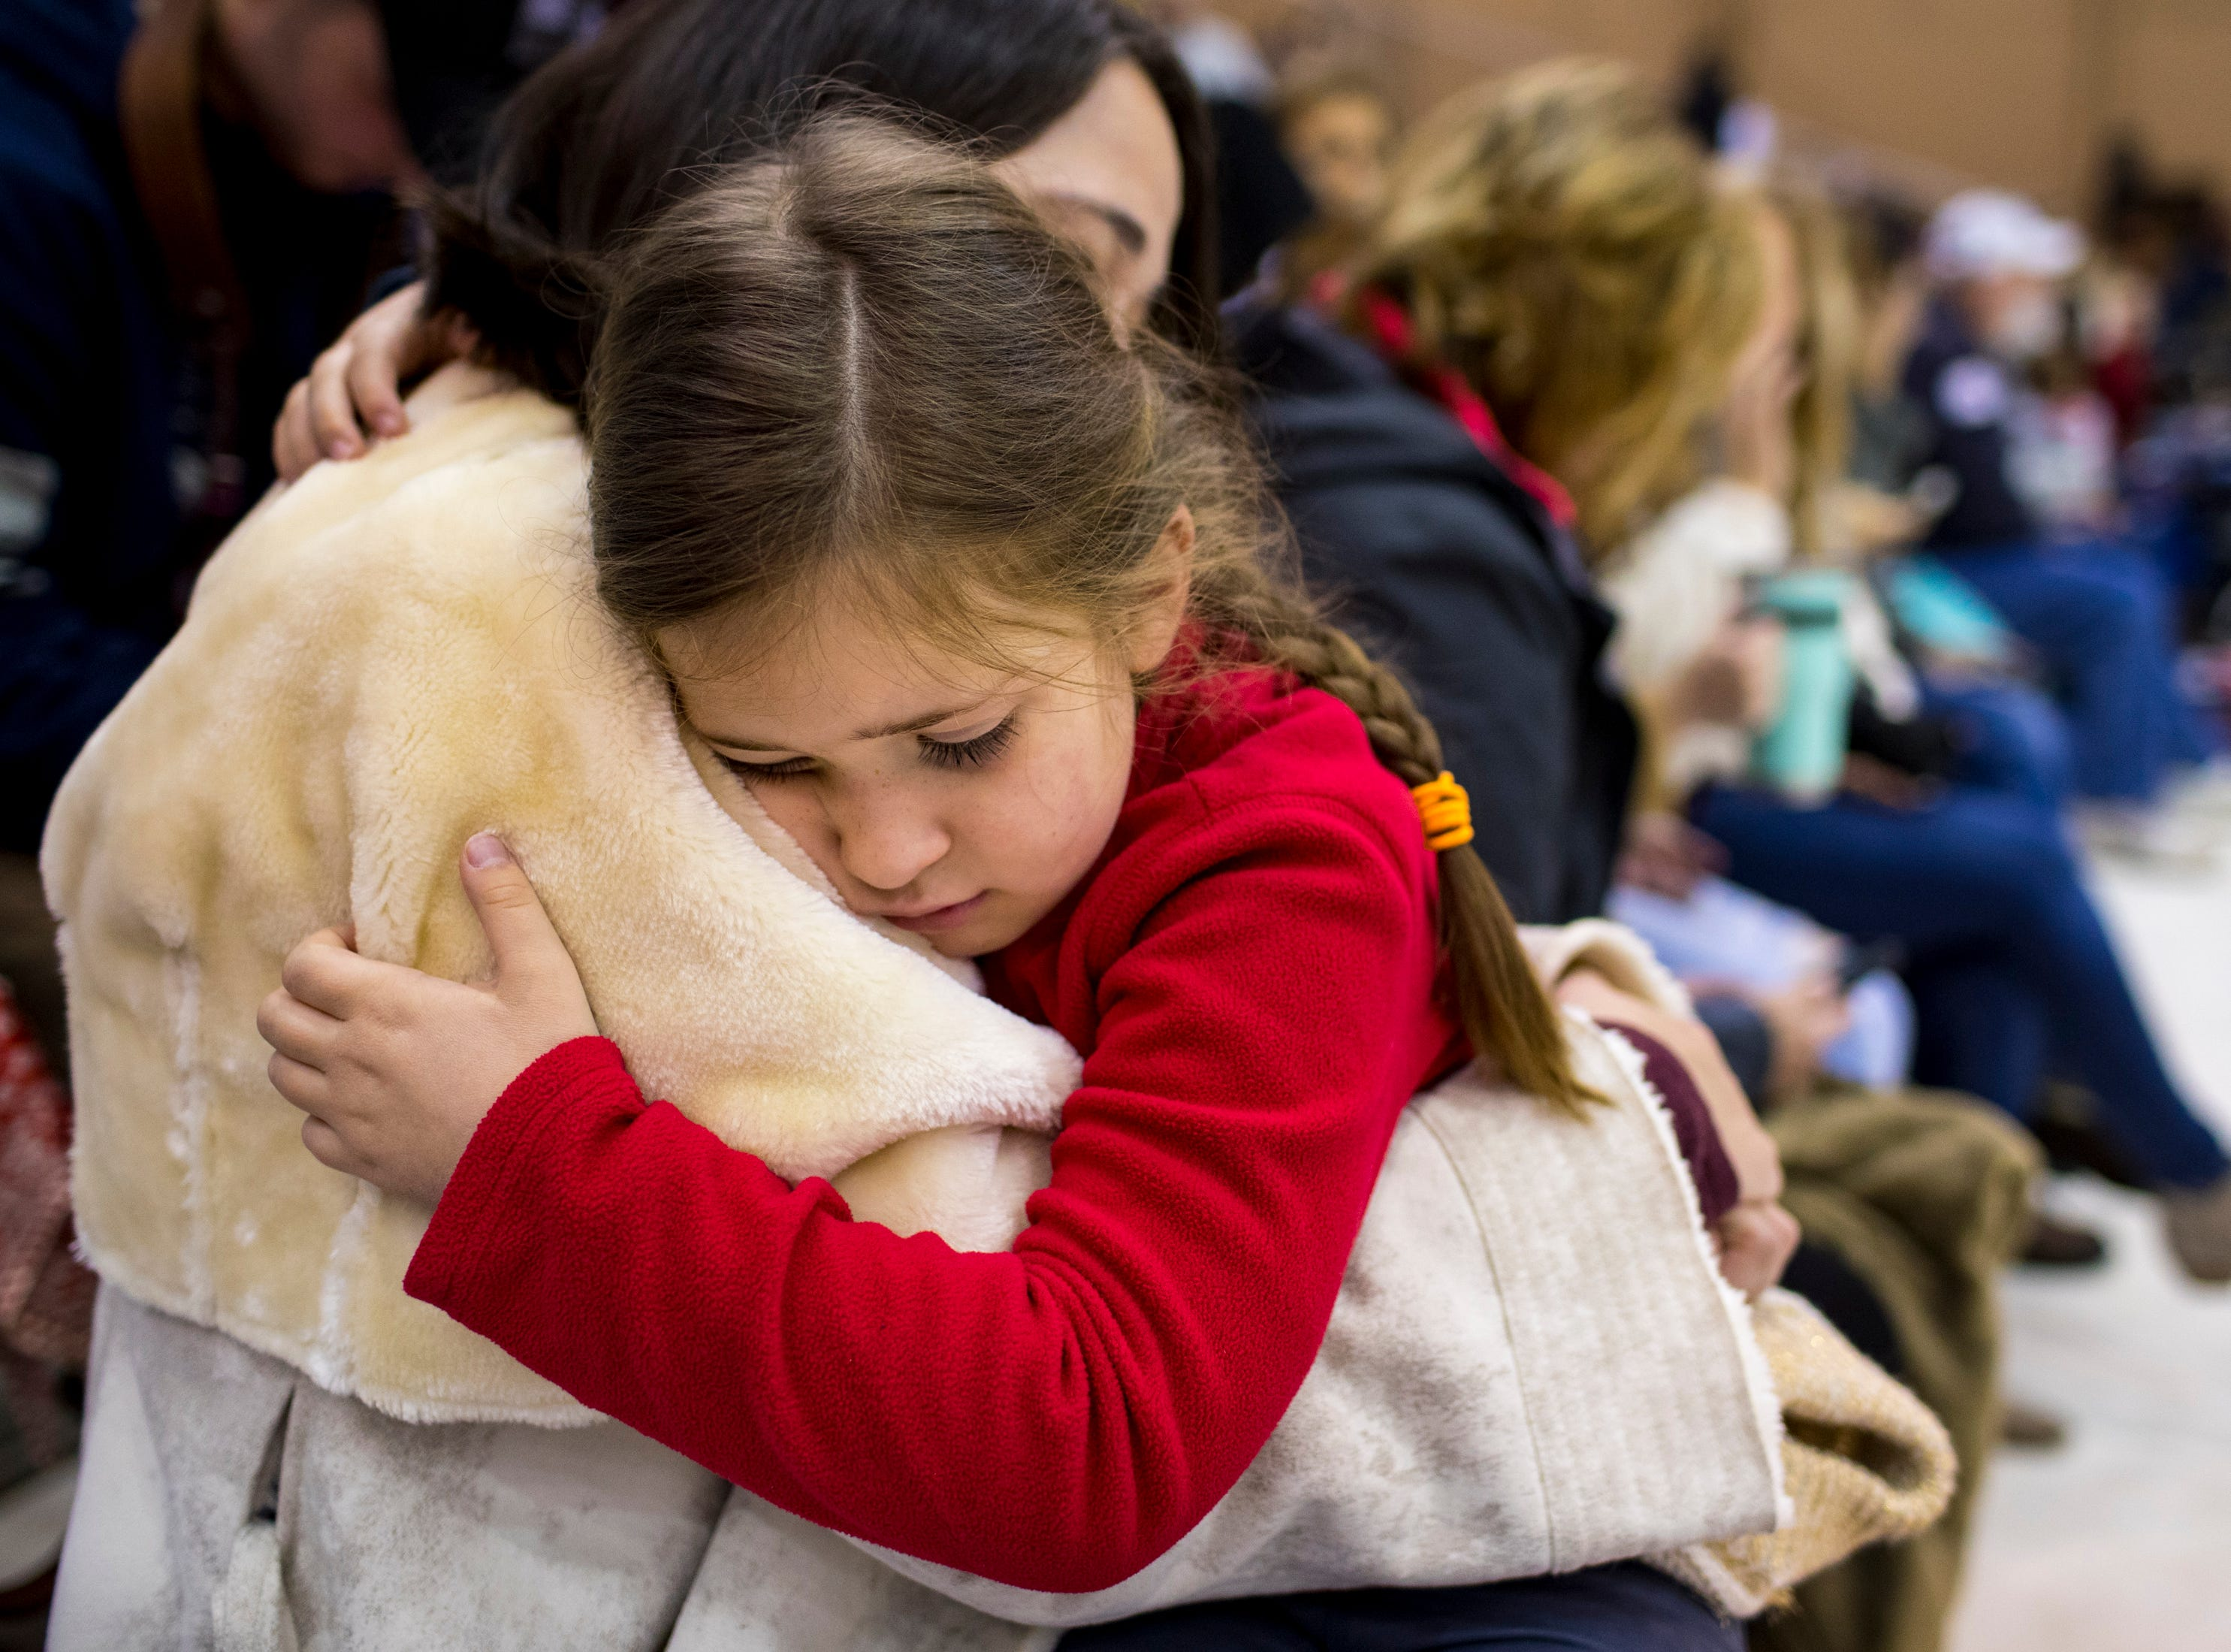 Katsiaryna Quandt holds her daughter Valentina Quandt, 6, while waiting for 1st Lt. Daniel Quandt to arrive during the welcome home ceremony for the 2nd Battalion, 44th Air Defense Artillery Regiment and 101st Airborne Division at Fort Campbell in the early hours of Monday, Nov. 19, 2018. The soldiers were returning from a 9-month deployment in Afghanistan.